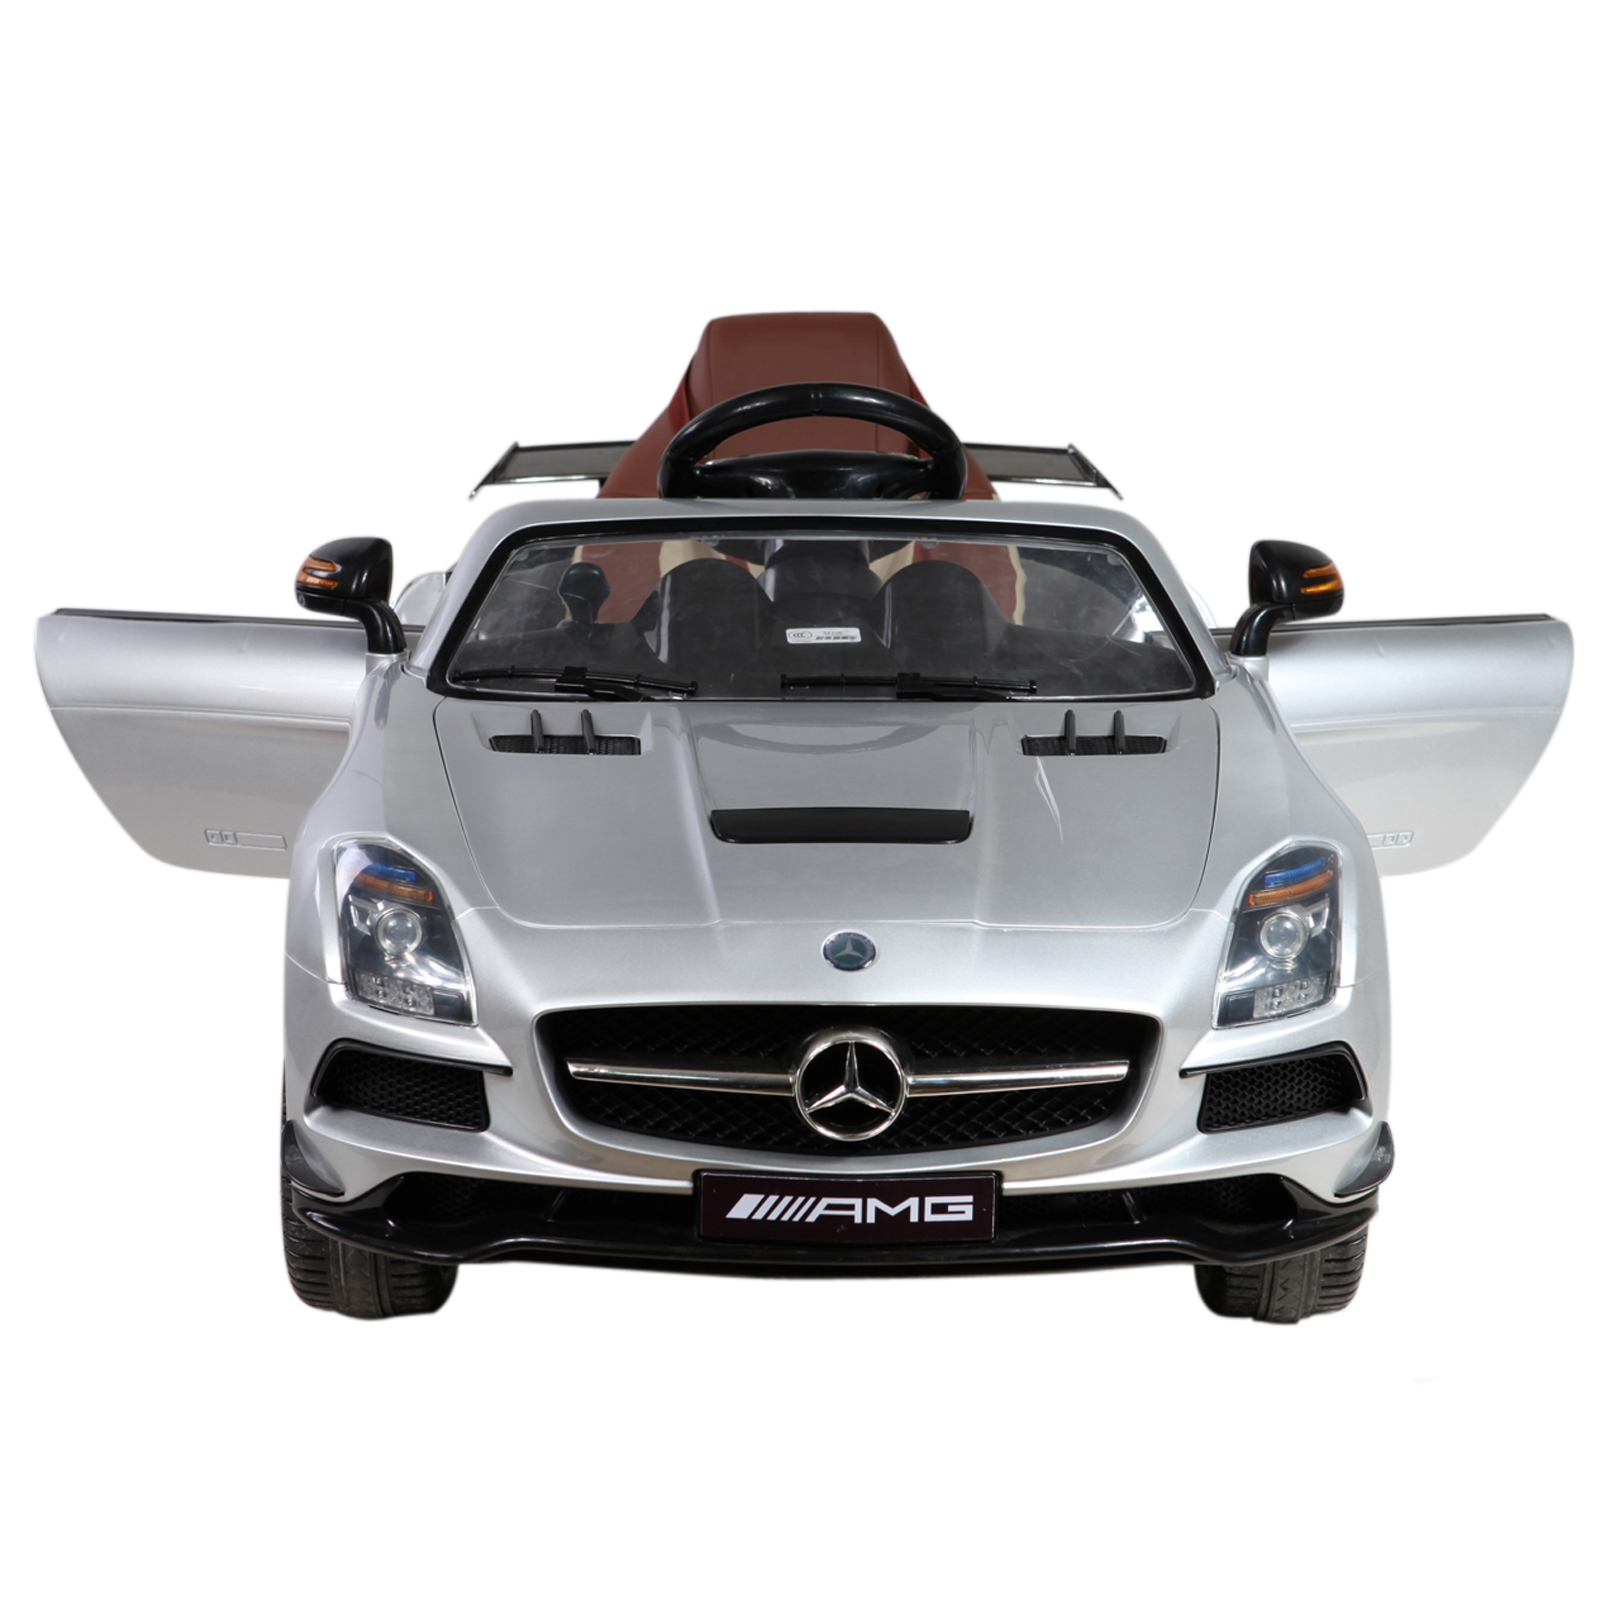 Licensed Mercedes Benz SLS AMG Black Series 12V Kids Battery Powered Ride On Car in Silver